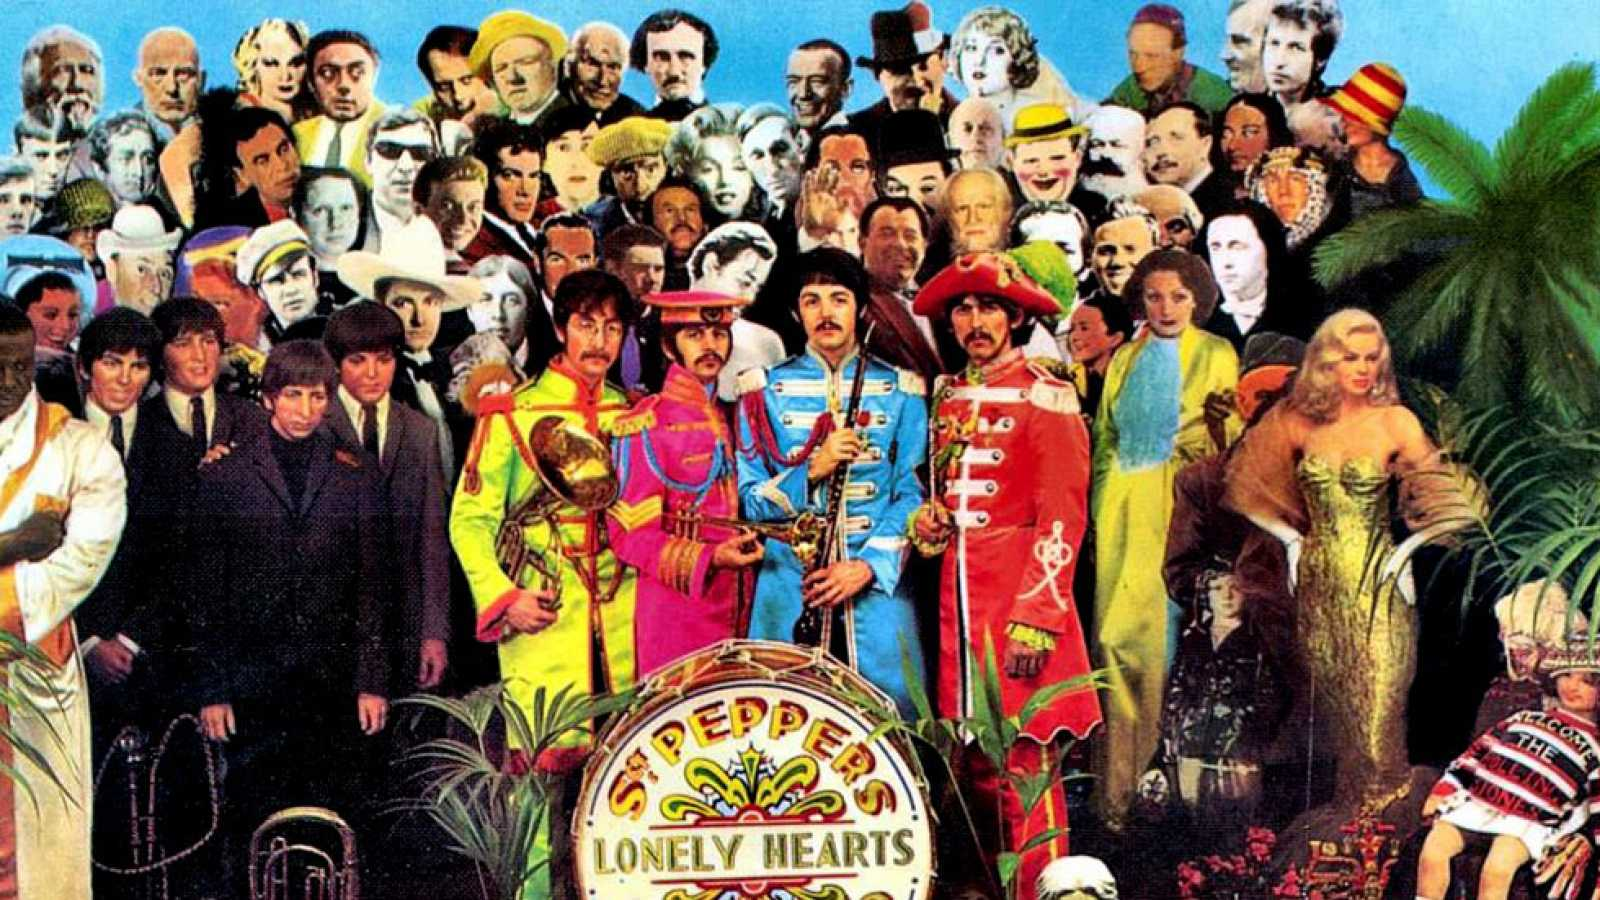 Sgt. Pepper's Lonely Hearts Club Band : The Beatles en la cúspide de su genialidad